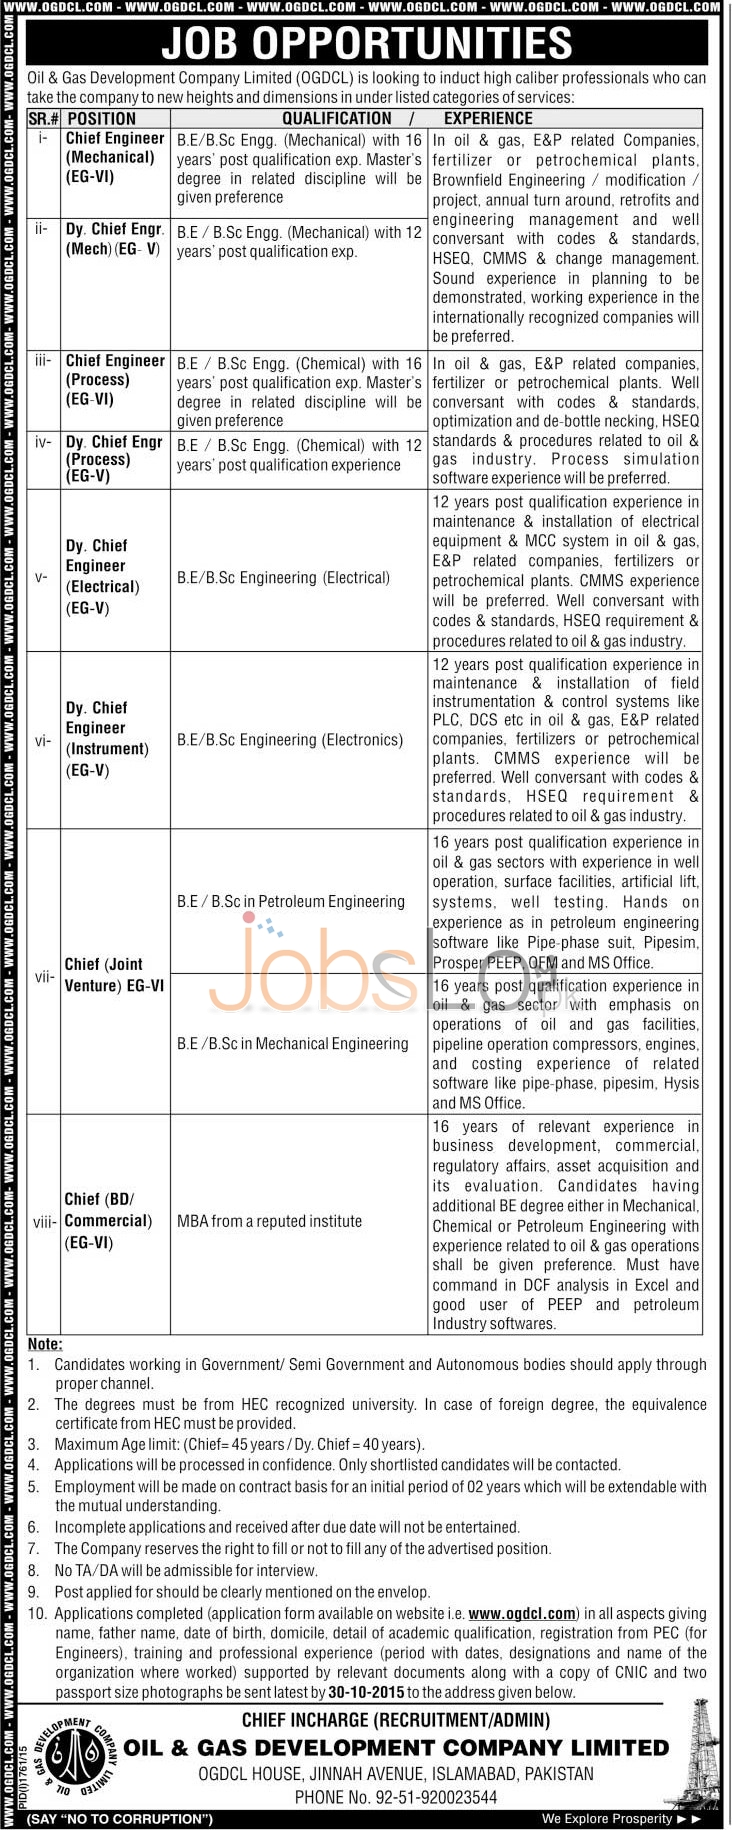 www.ogdcl.com jobs 2015 Application Form Latest Advertisement